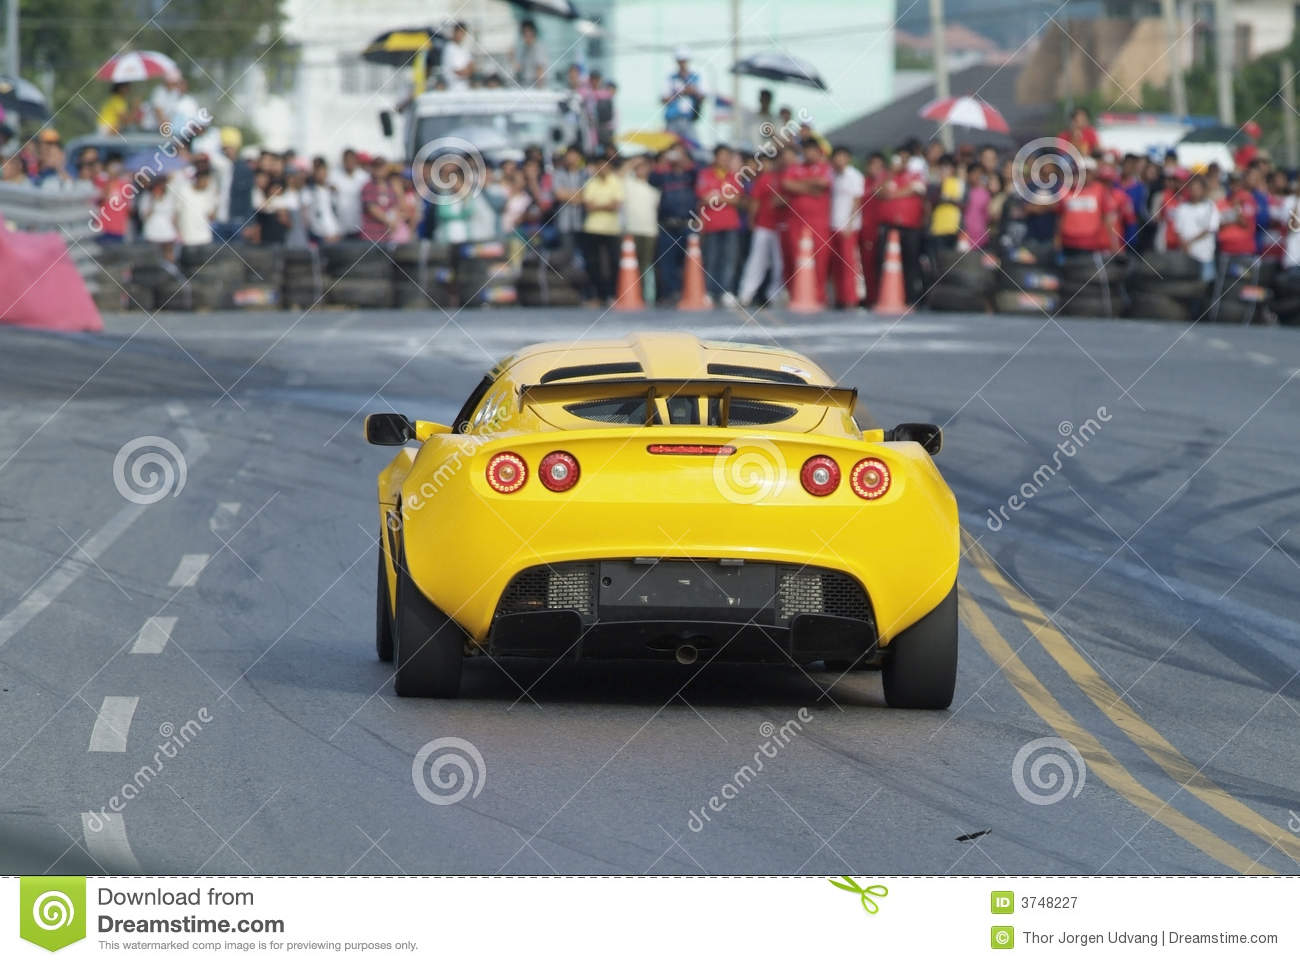 Racing car and spectators